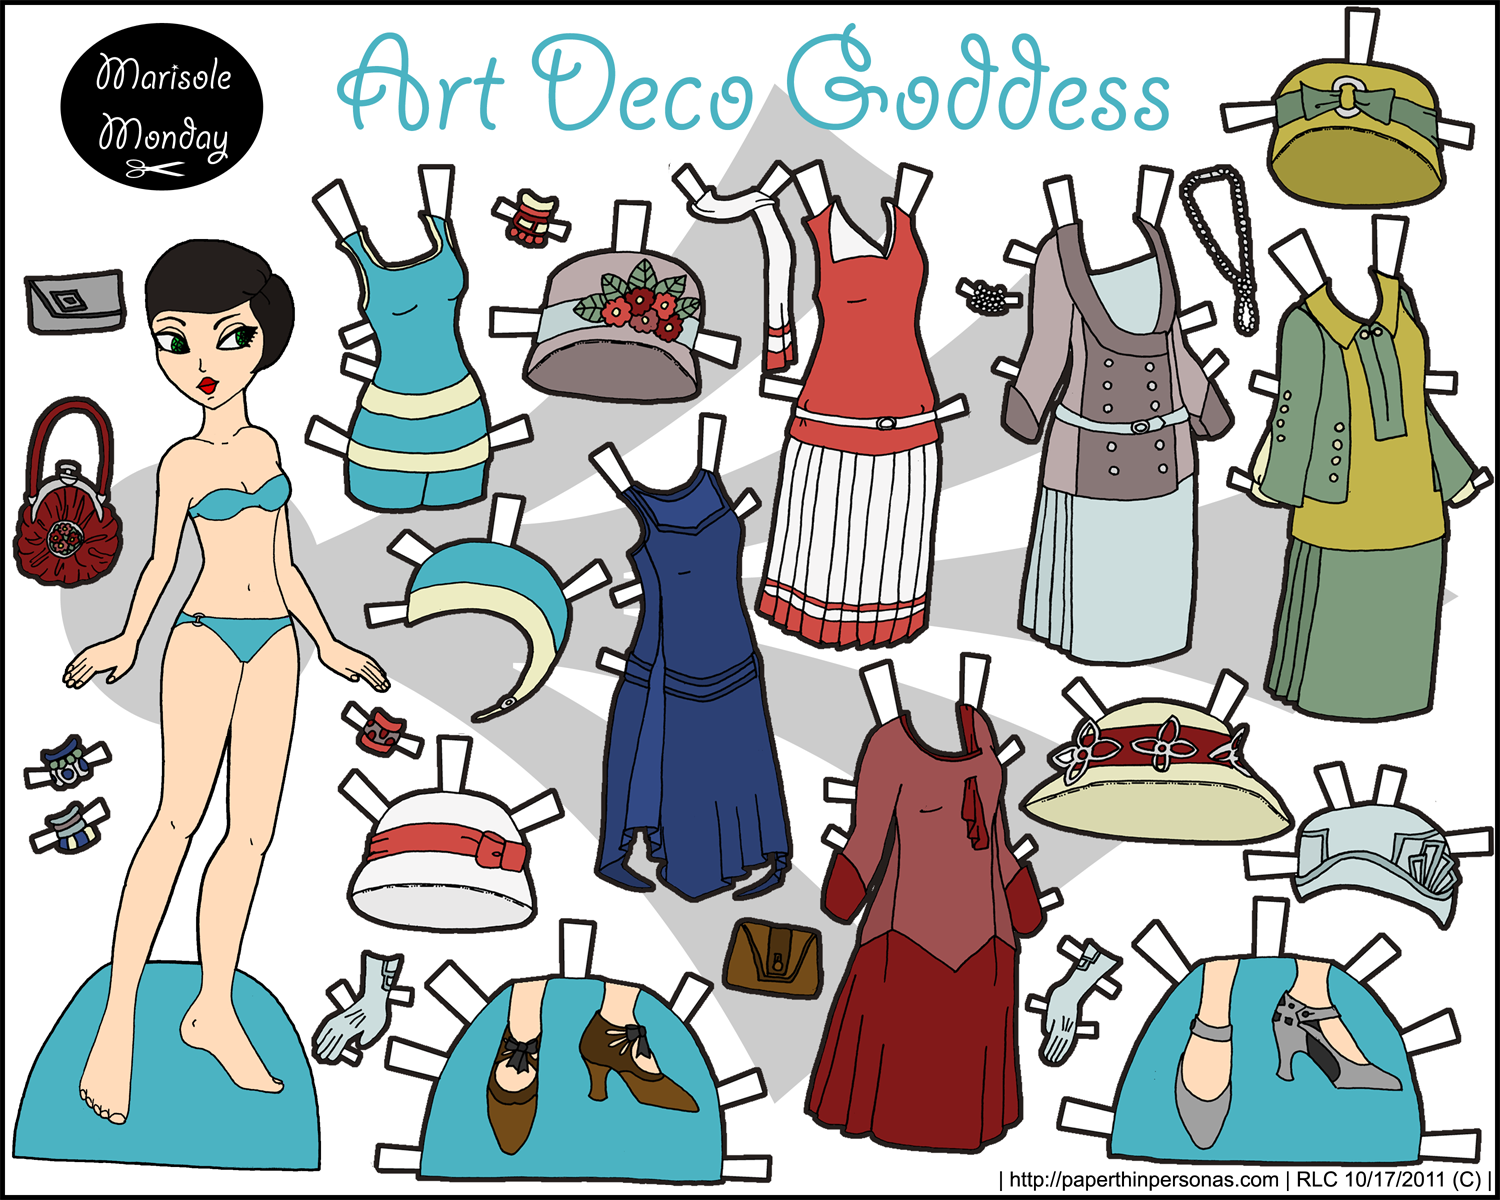 a historical paper doll with 1920s fashions in color free to print from paperthinpersonas